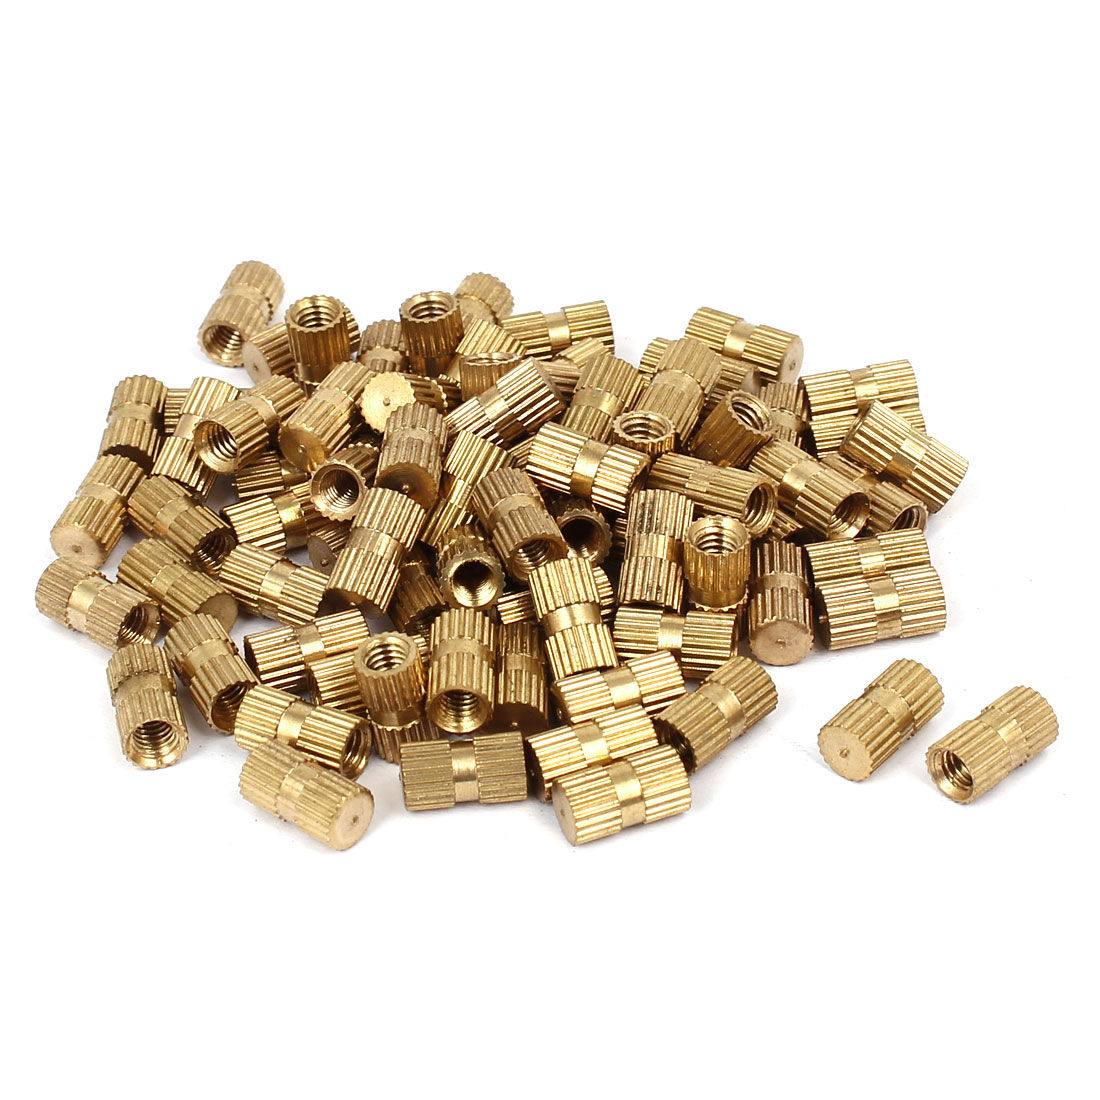 M4 x 10mm 5.5mm OD Brass Injection Molding Insert Knurled Thumb Nut 100PCS